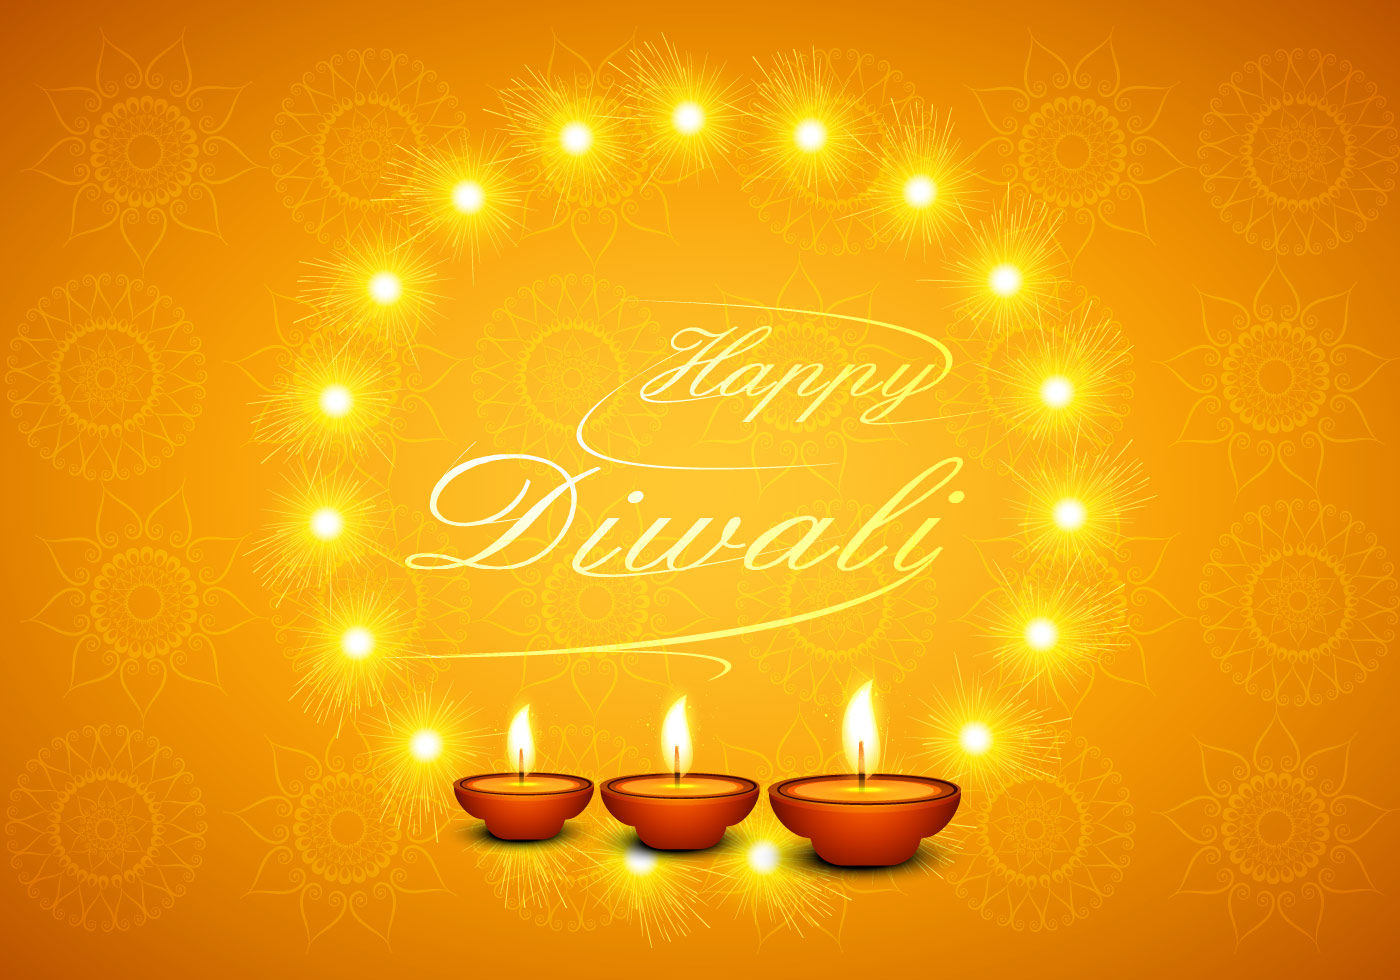 Diwali free vector art 2119 free downloads m4hsunfo